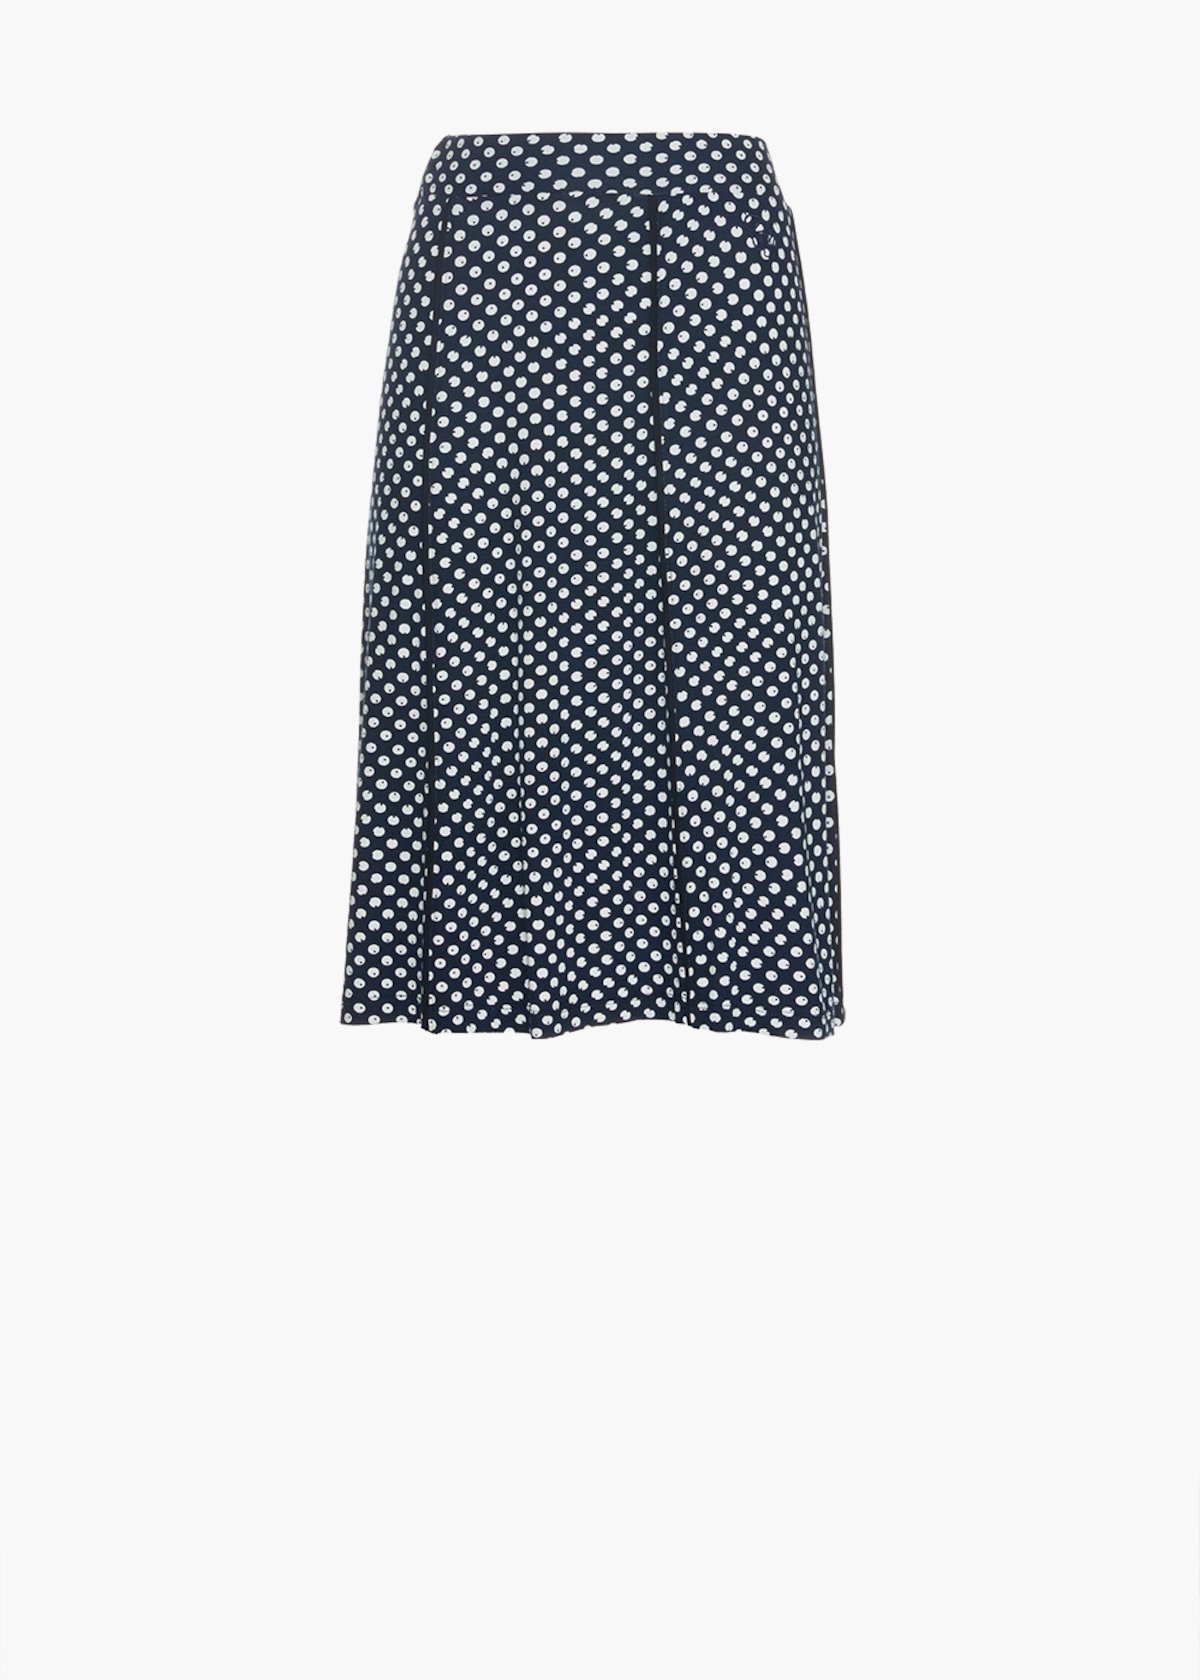 Skirt Goldys in all over printed jersey - Medium Blue / White Pois - Woman - Category image